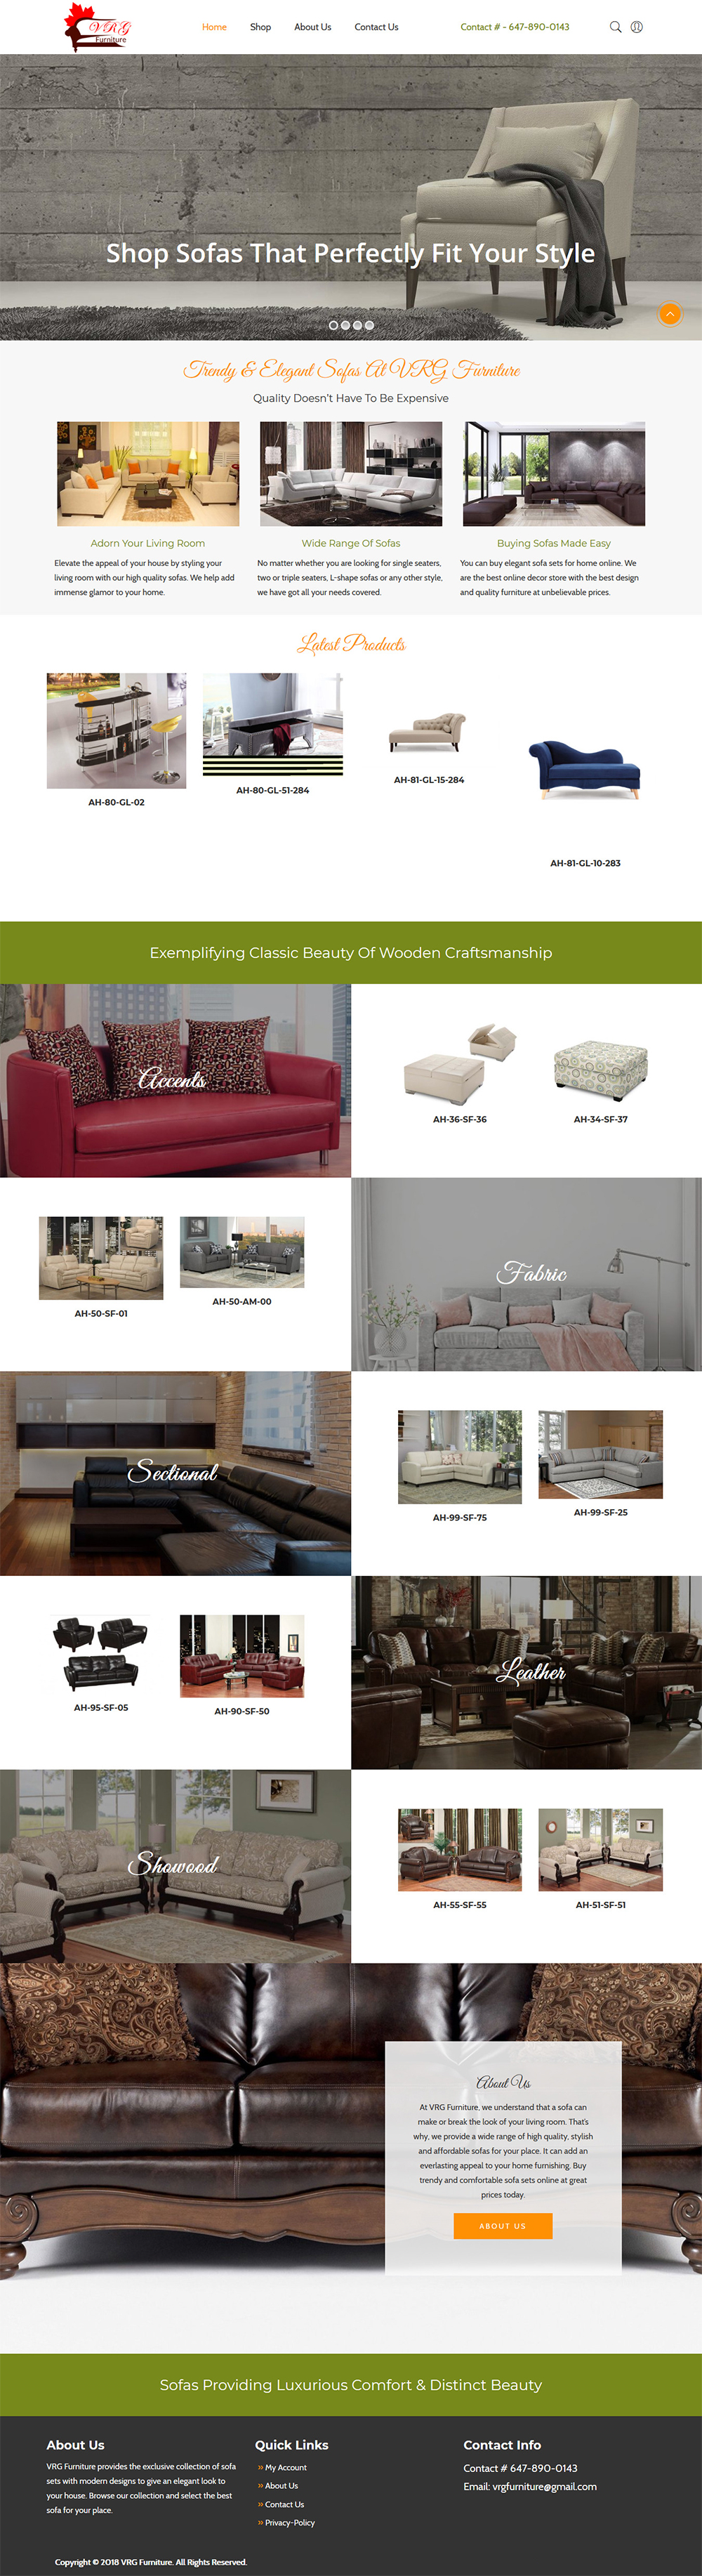 Ecommerce Website Design Markham